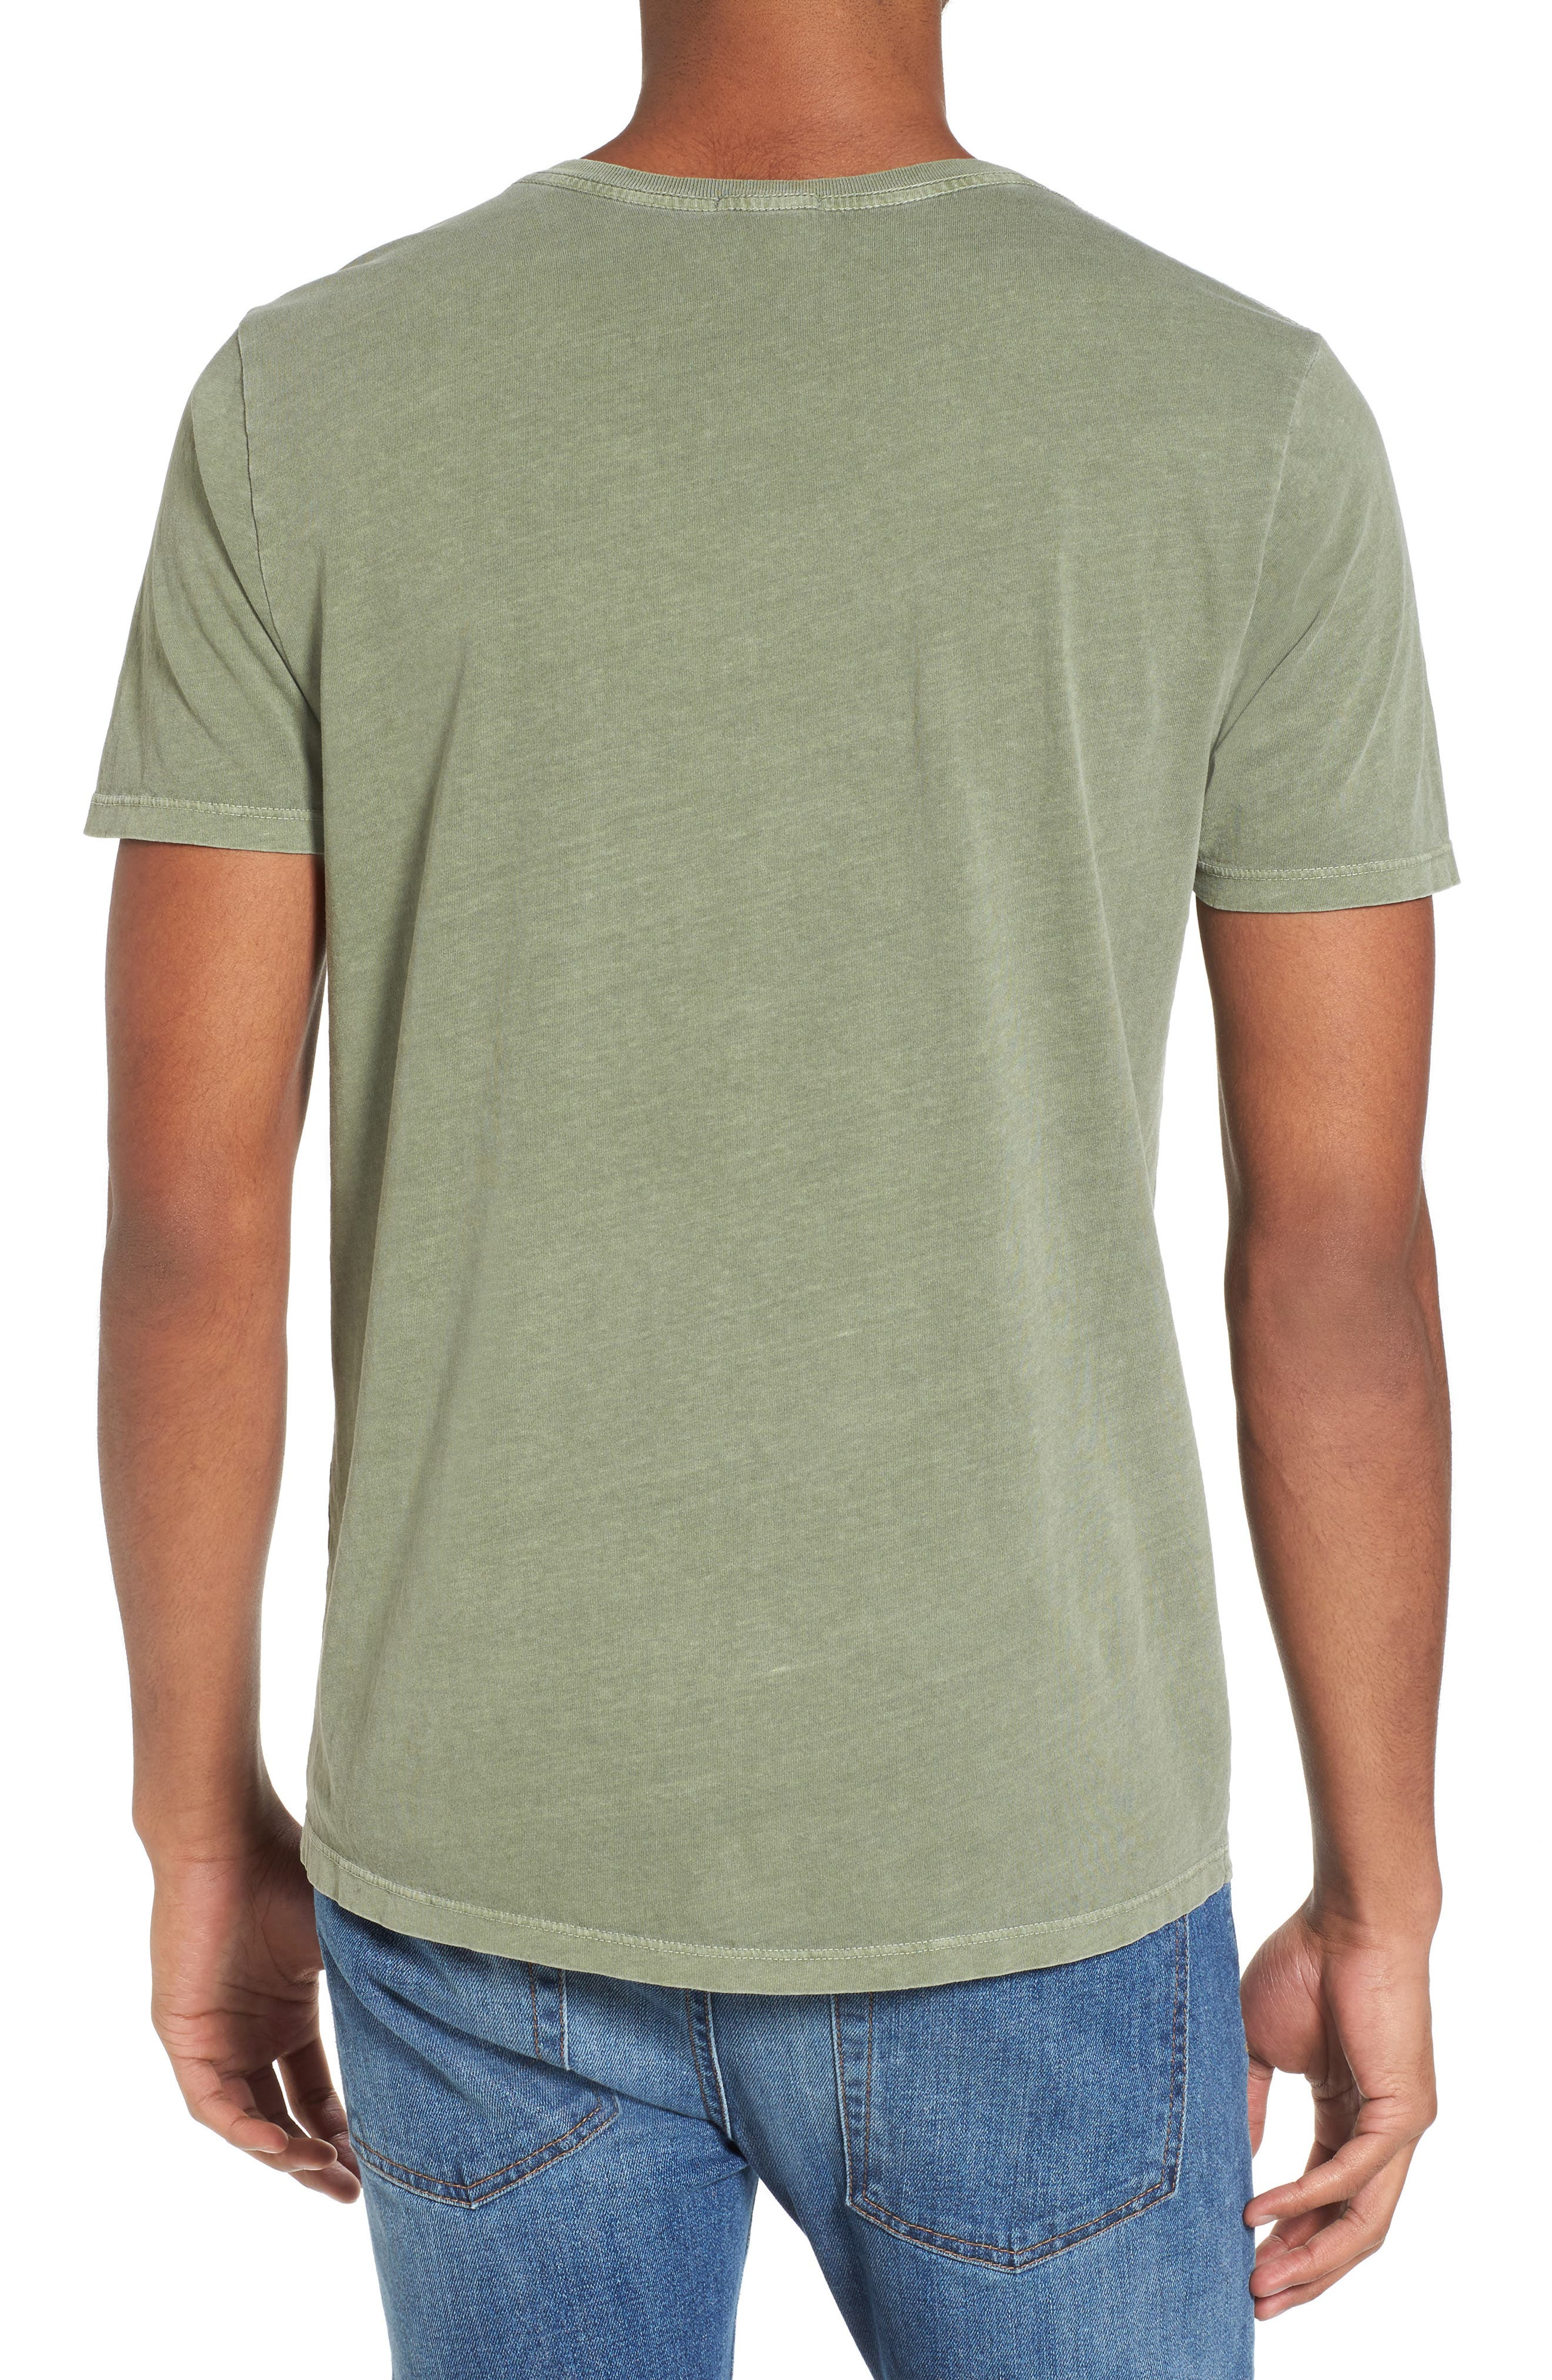 Fillmore Street Vintage Graphic T-Shirt,                             Alternate thumbnail 2, color,                             Army Green